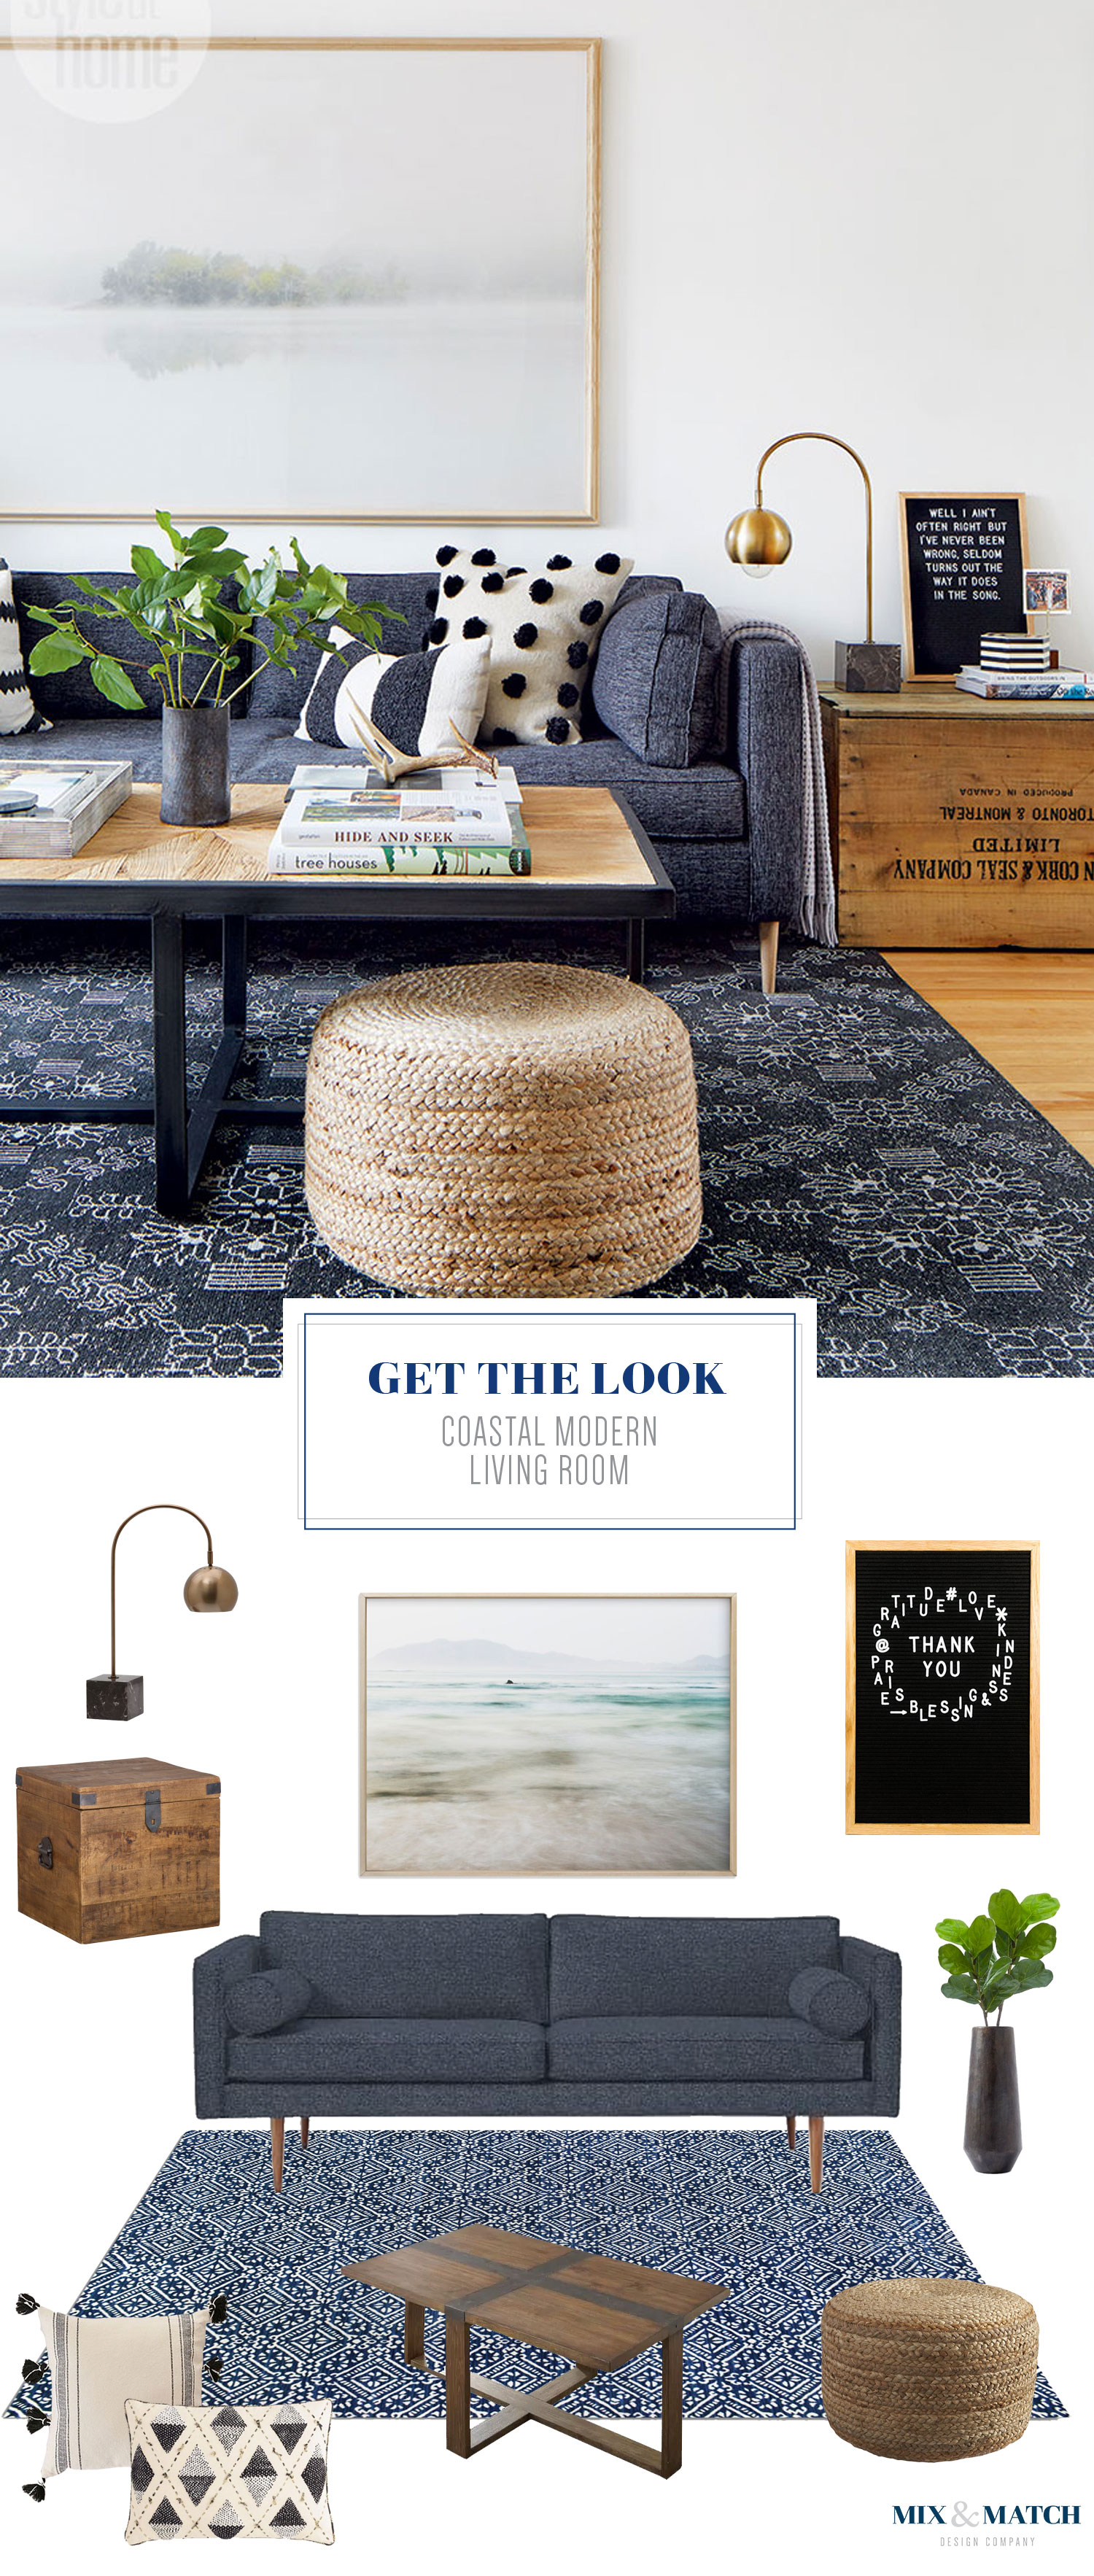 Get the look of this coastal modern living room on the Mix & Match Design Company blog. I've rounded up all the sources for you to recreate this design in your own home! I'm loving the blue, black, and natural wood color scheme, and the rustic touches are just right!